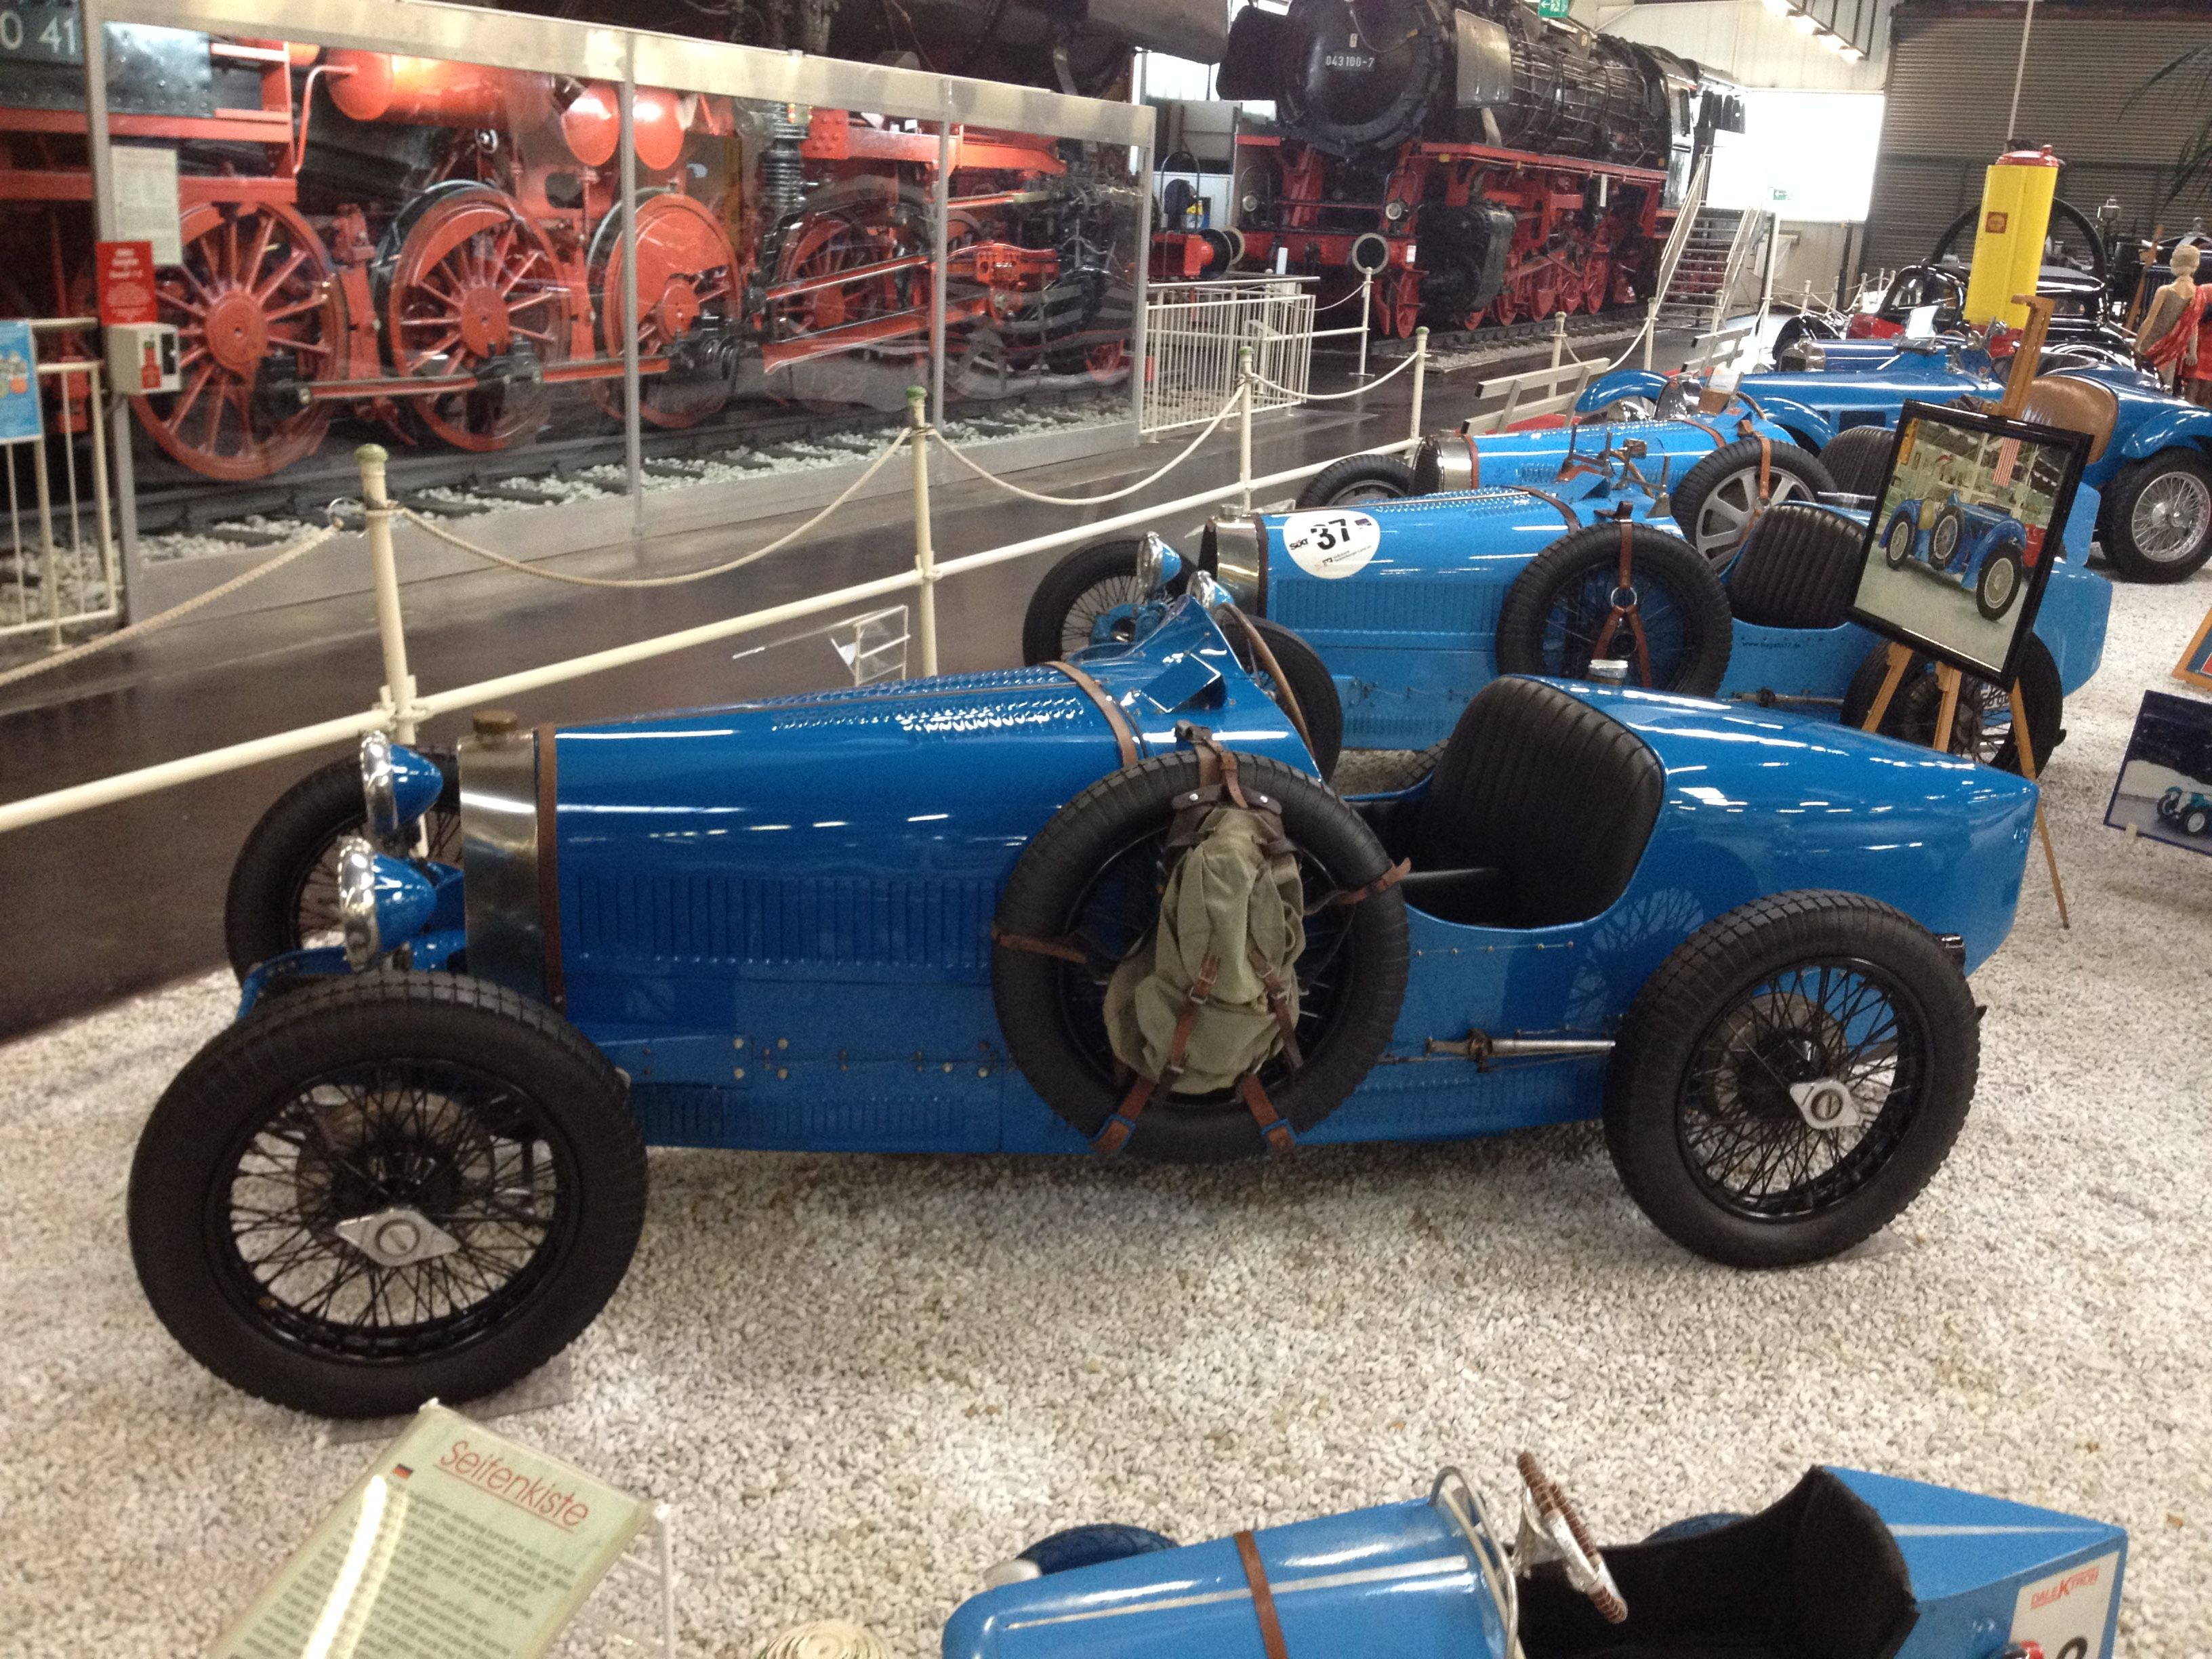 Bugatti, Sinsheim Museum, Germany | Cars | Pinterest | Cars on volkswagen museum, all american racers museum, audi museum, dodge museum, general motors museum, oldsmobile museum, amc museum, kenworth truck museum, maserati museum, saab museum, honda museum, toyota museum, pontiac museum, cadillac museum, mazda museum, desoto museum, datsun museum, caterpillar museum, louis vuitton museum,